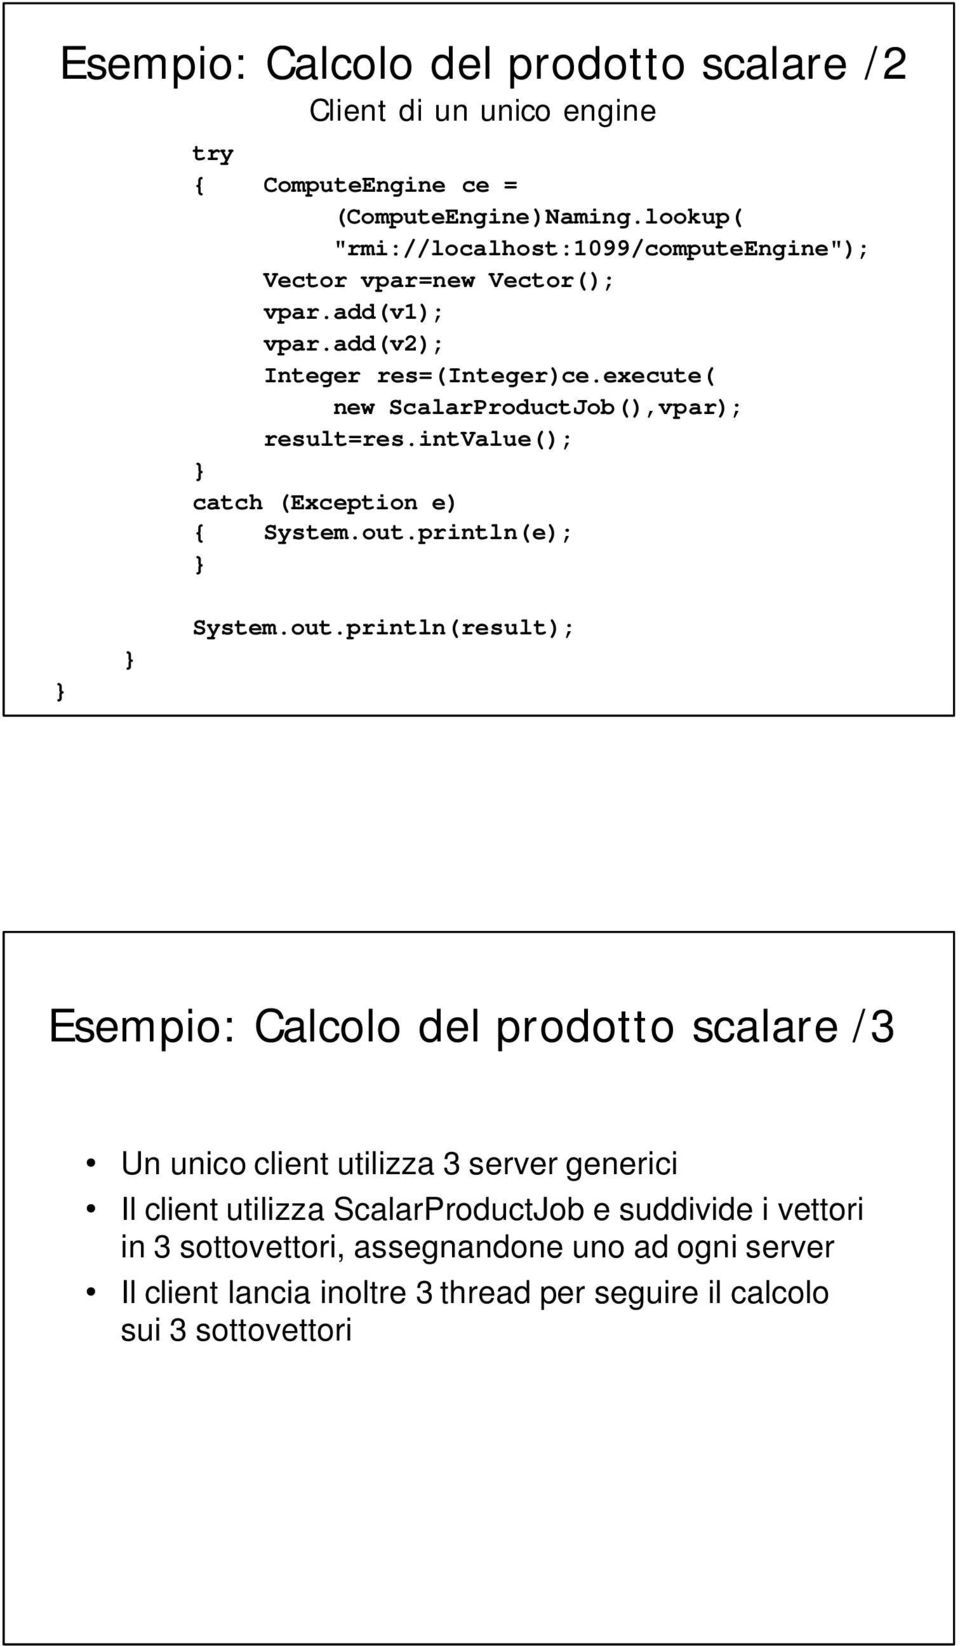 execute( new ScalarProductJob(),vpar); result=res.intvalue(); catch (Exception e) { System.out.